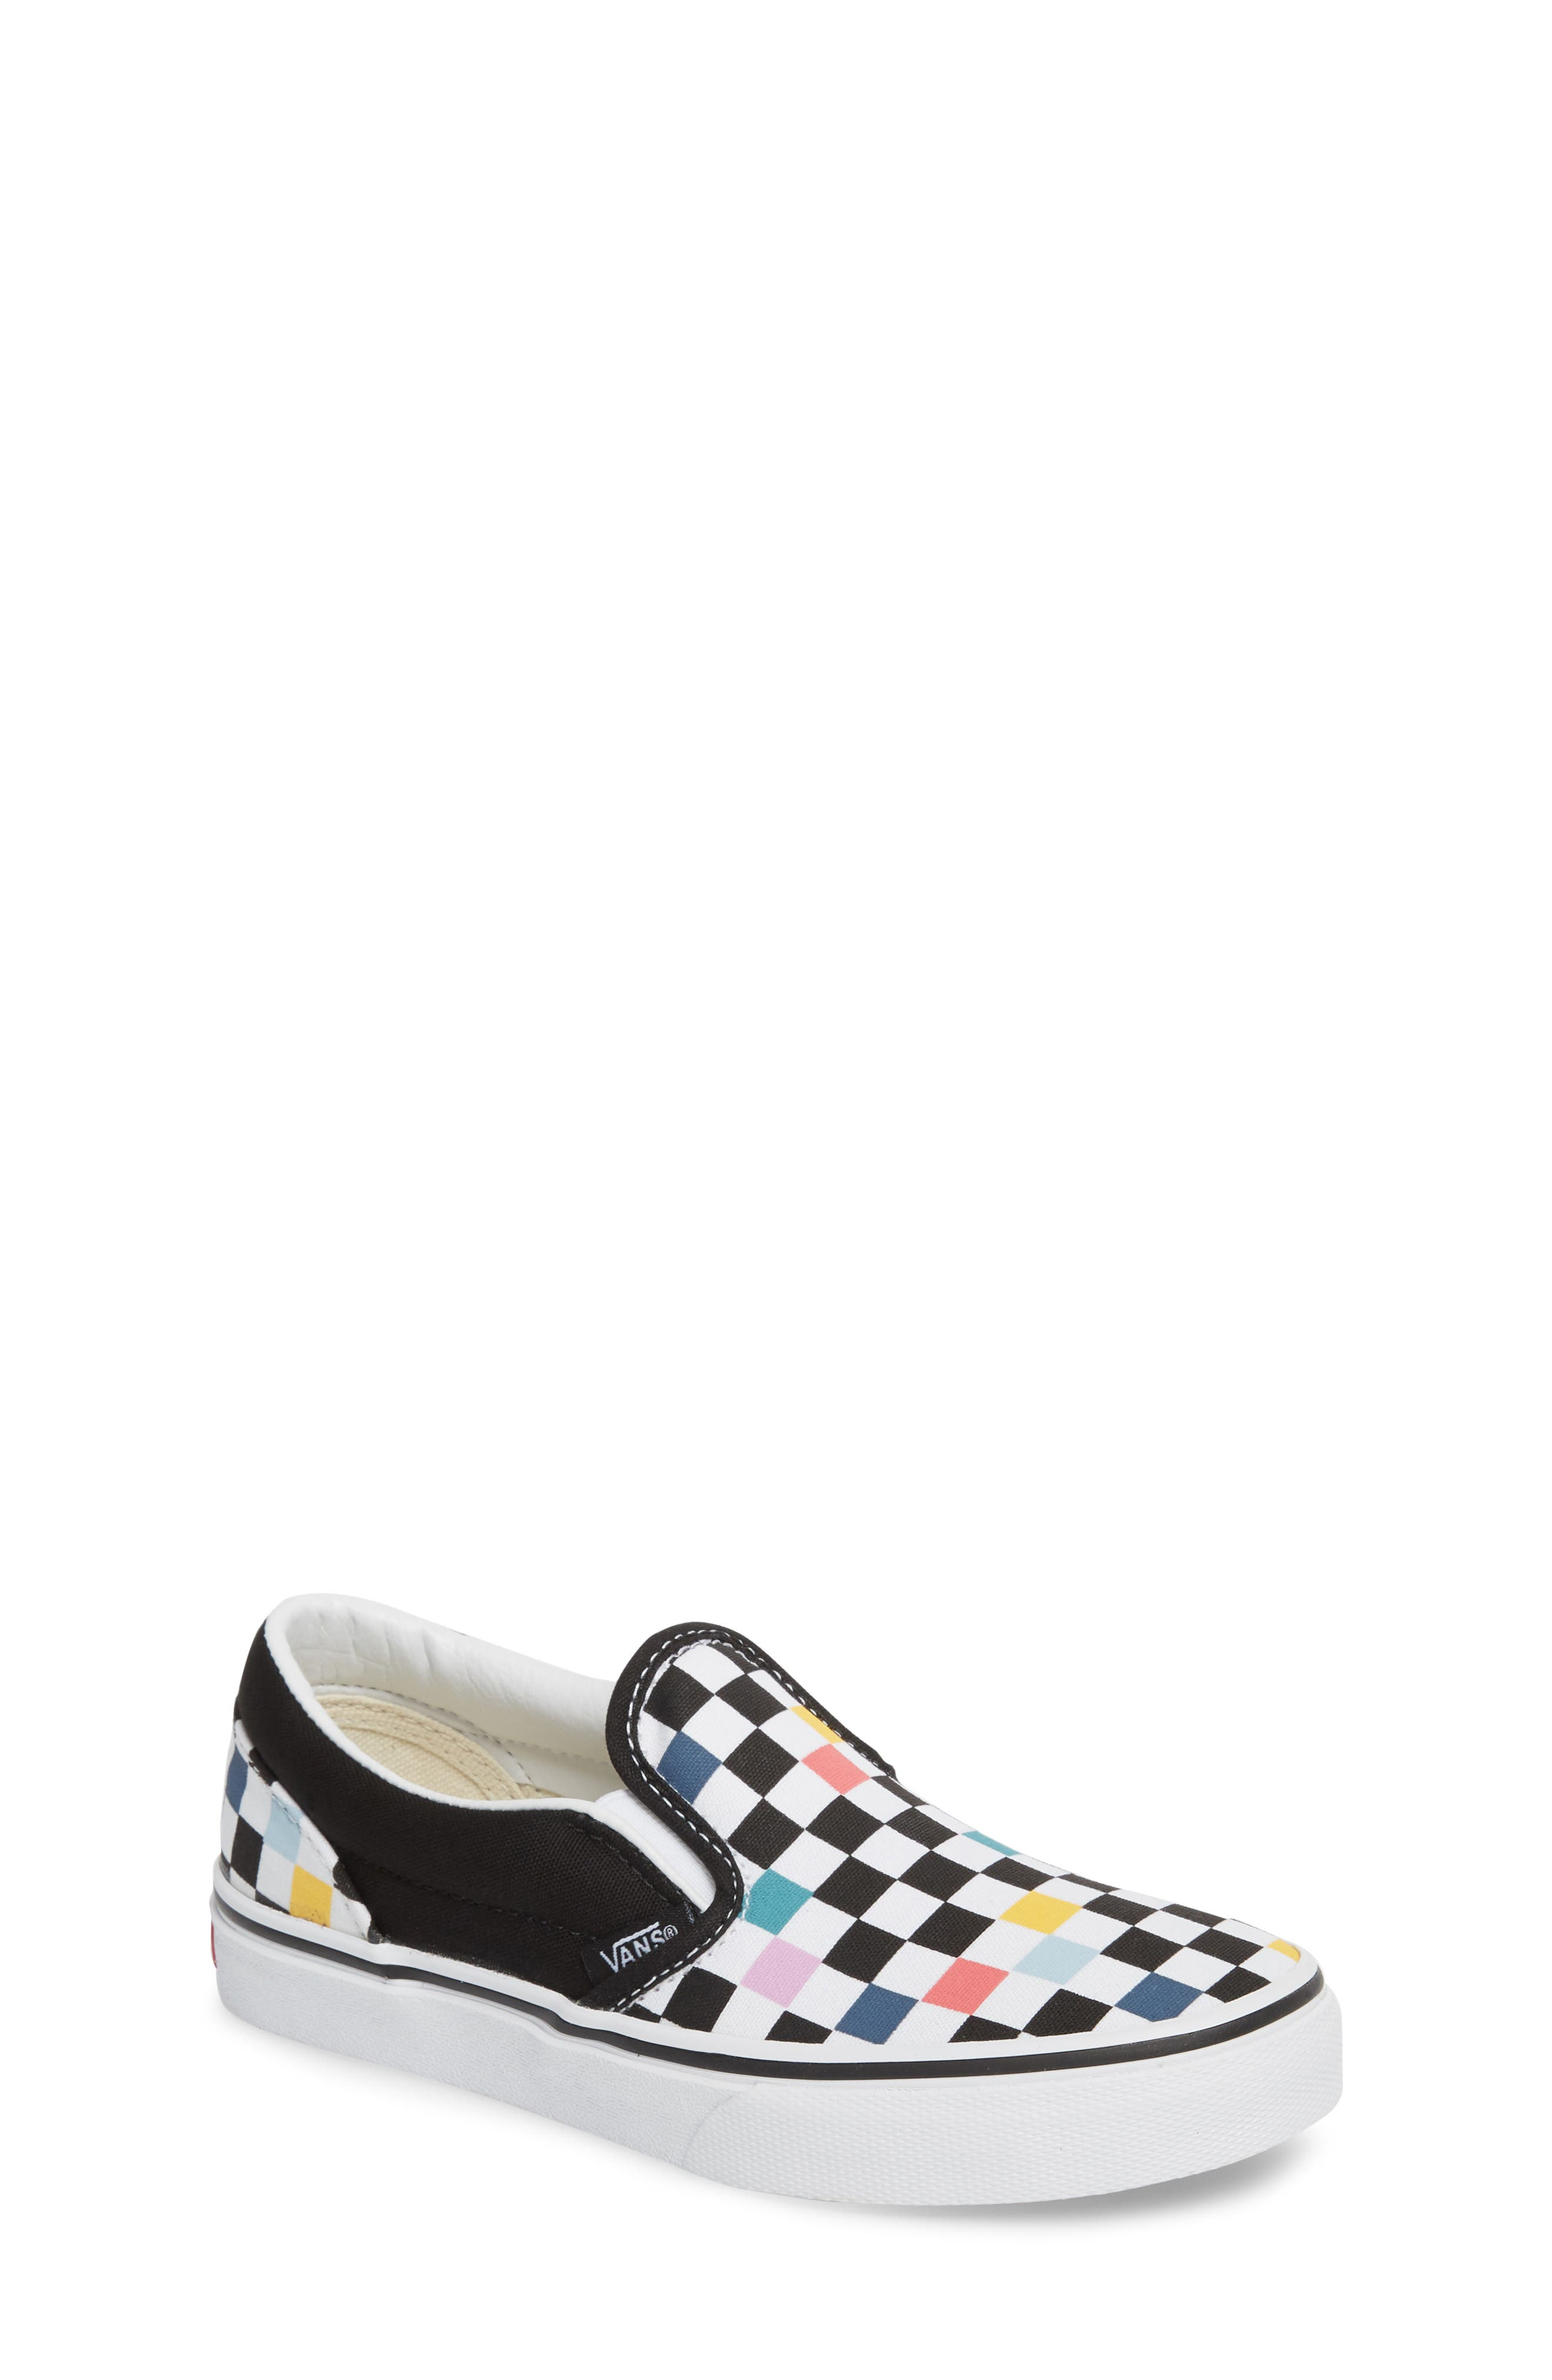 Party Check Slip-On Sneaker,                             Main thumbnail 1, color,                             001